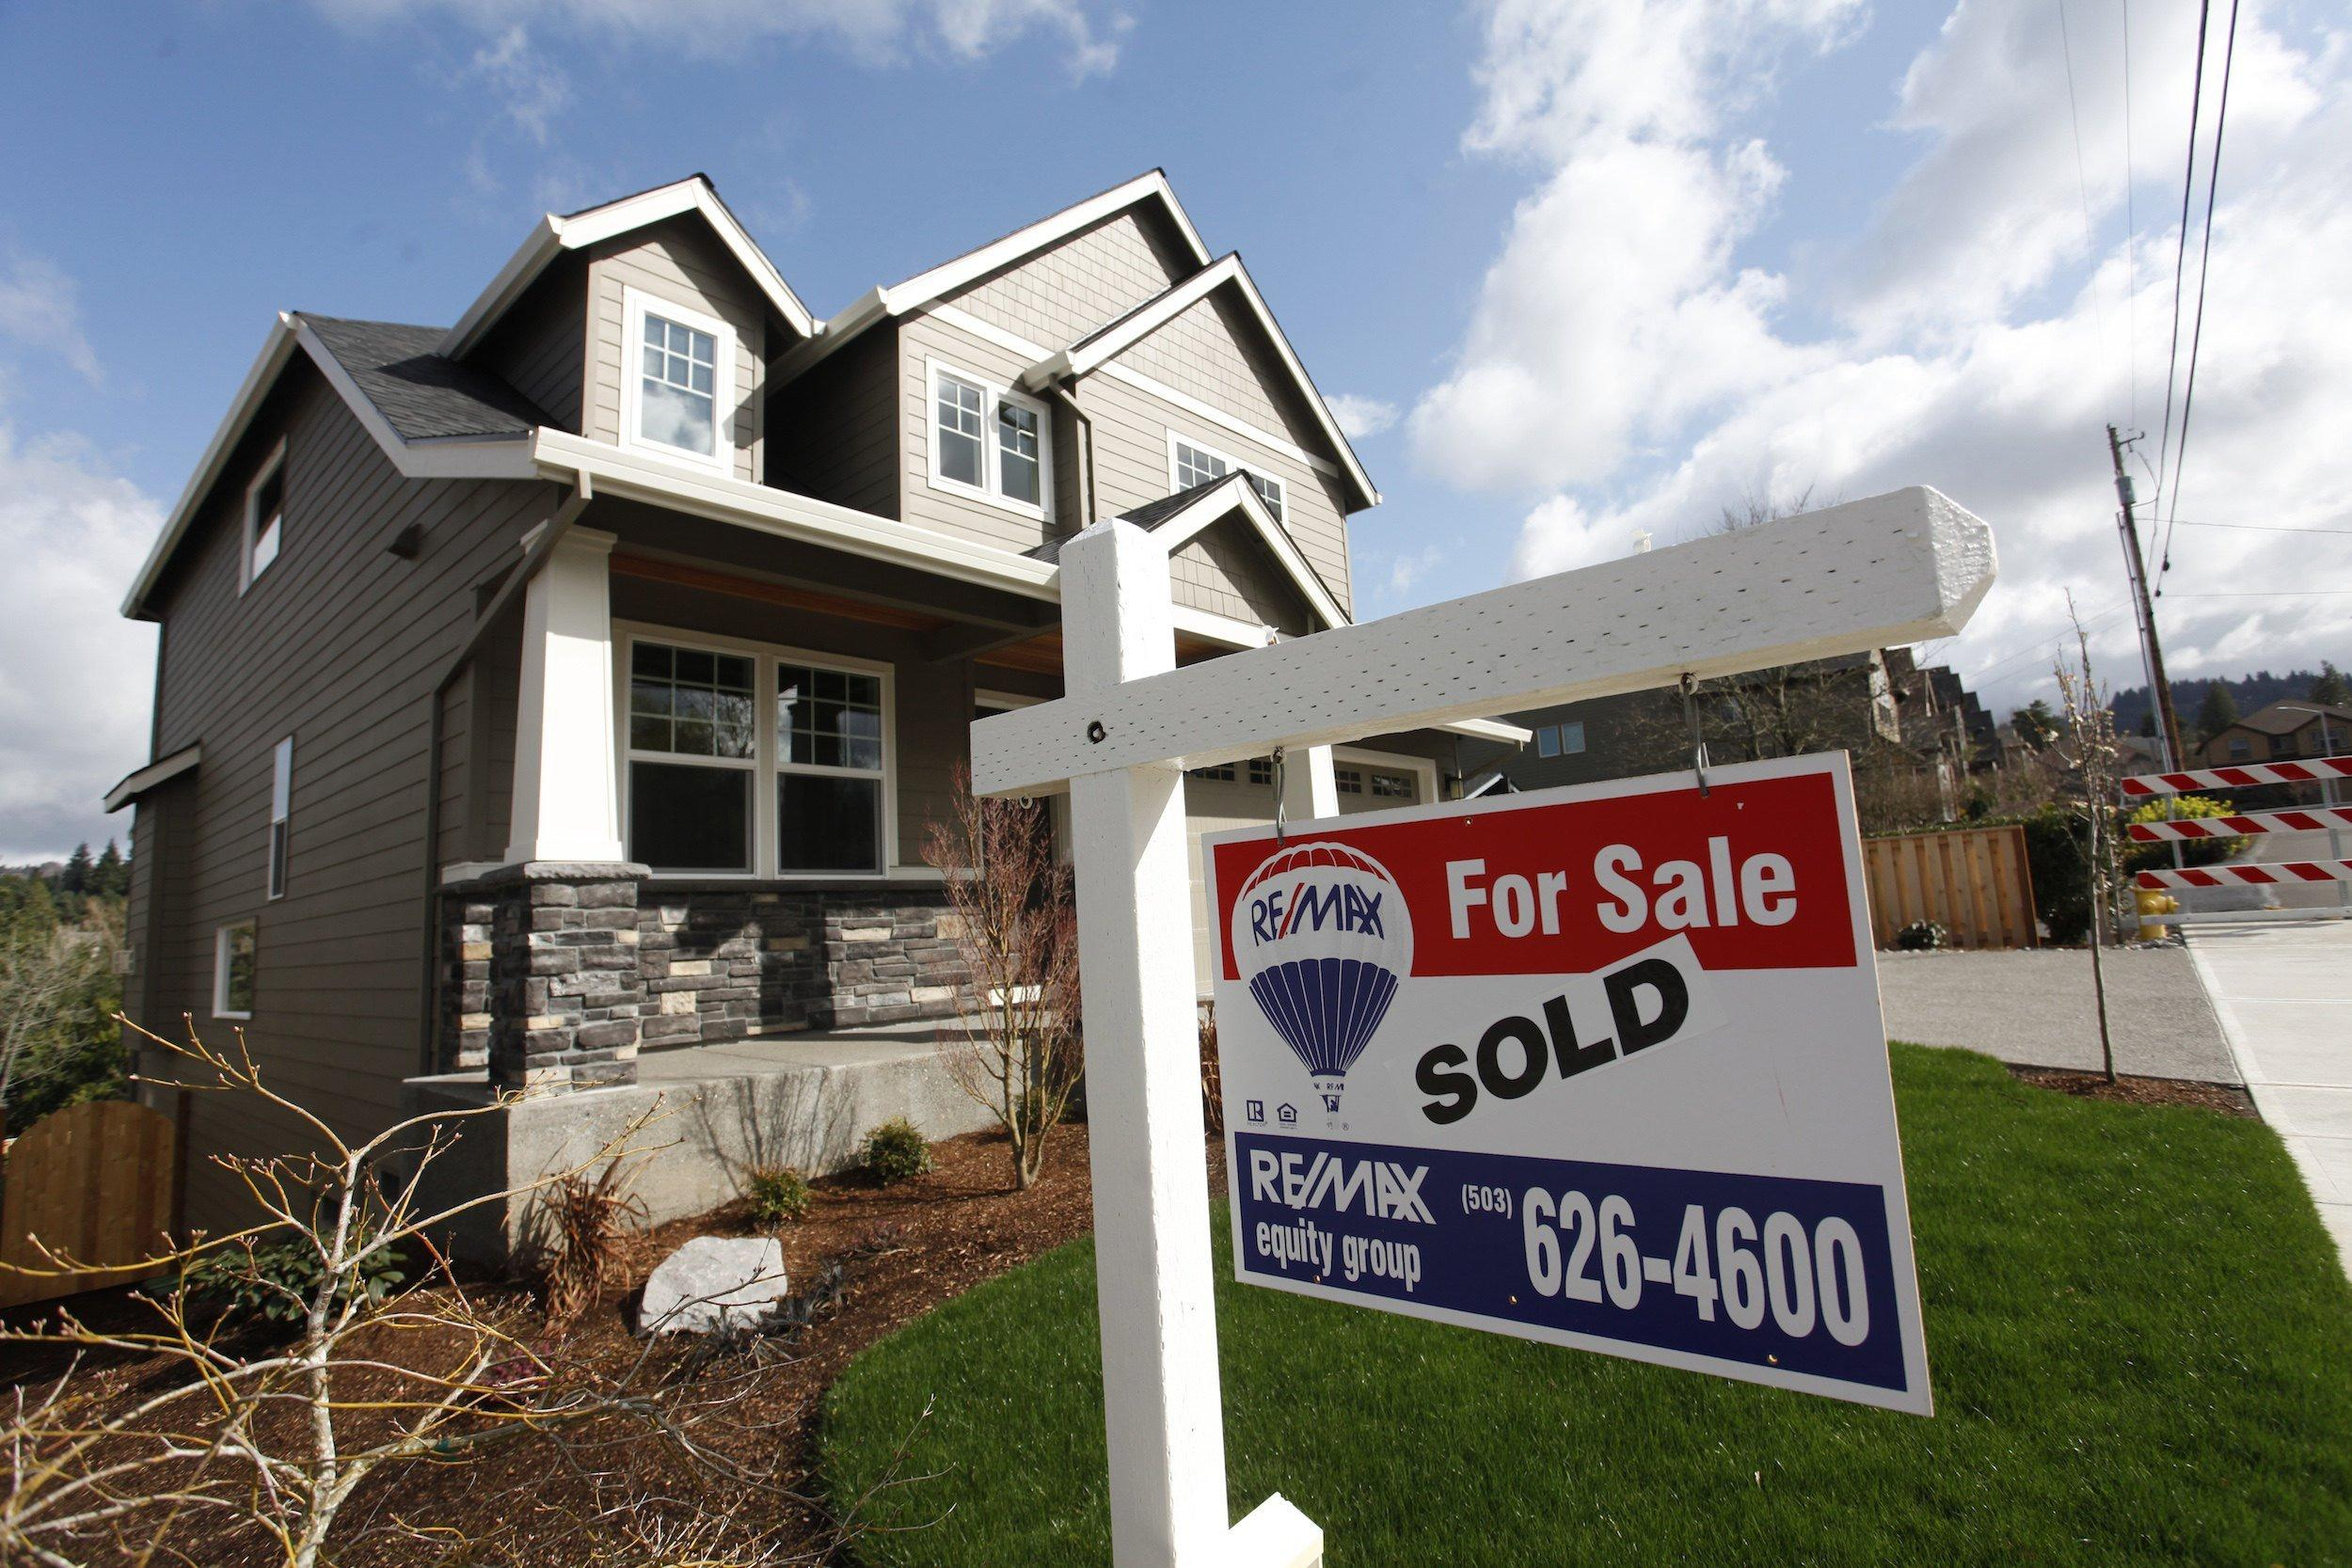 Home ownership is still viewed by many as fulfilling the American Dream.